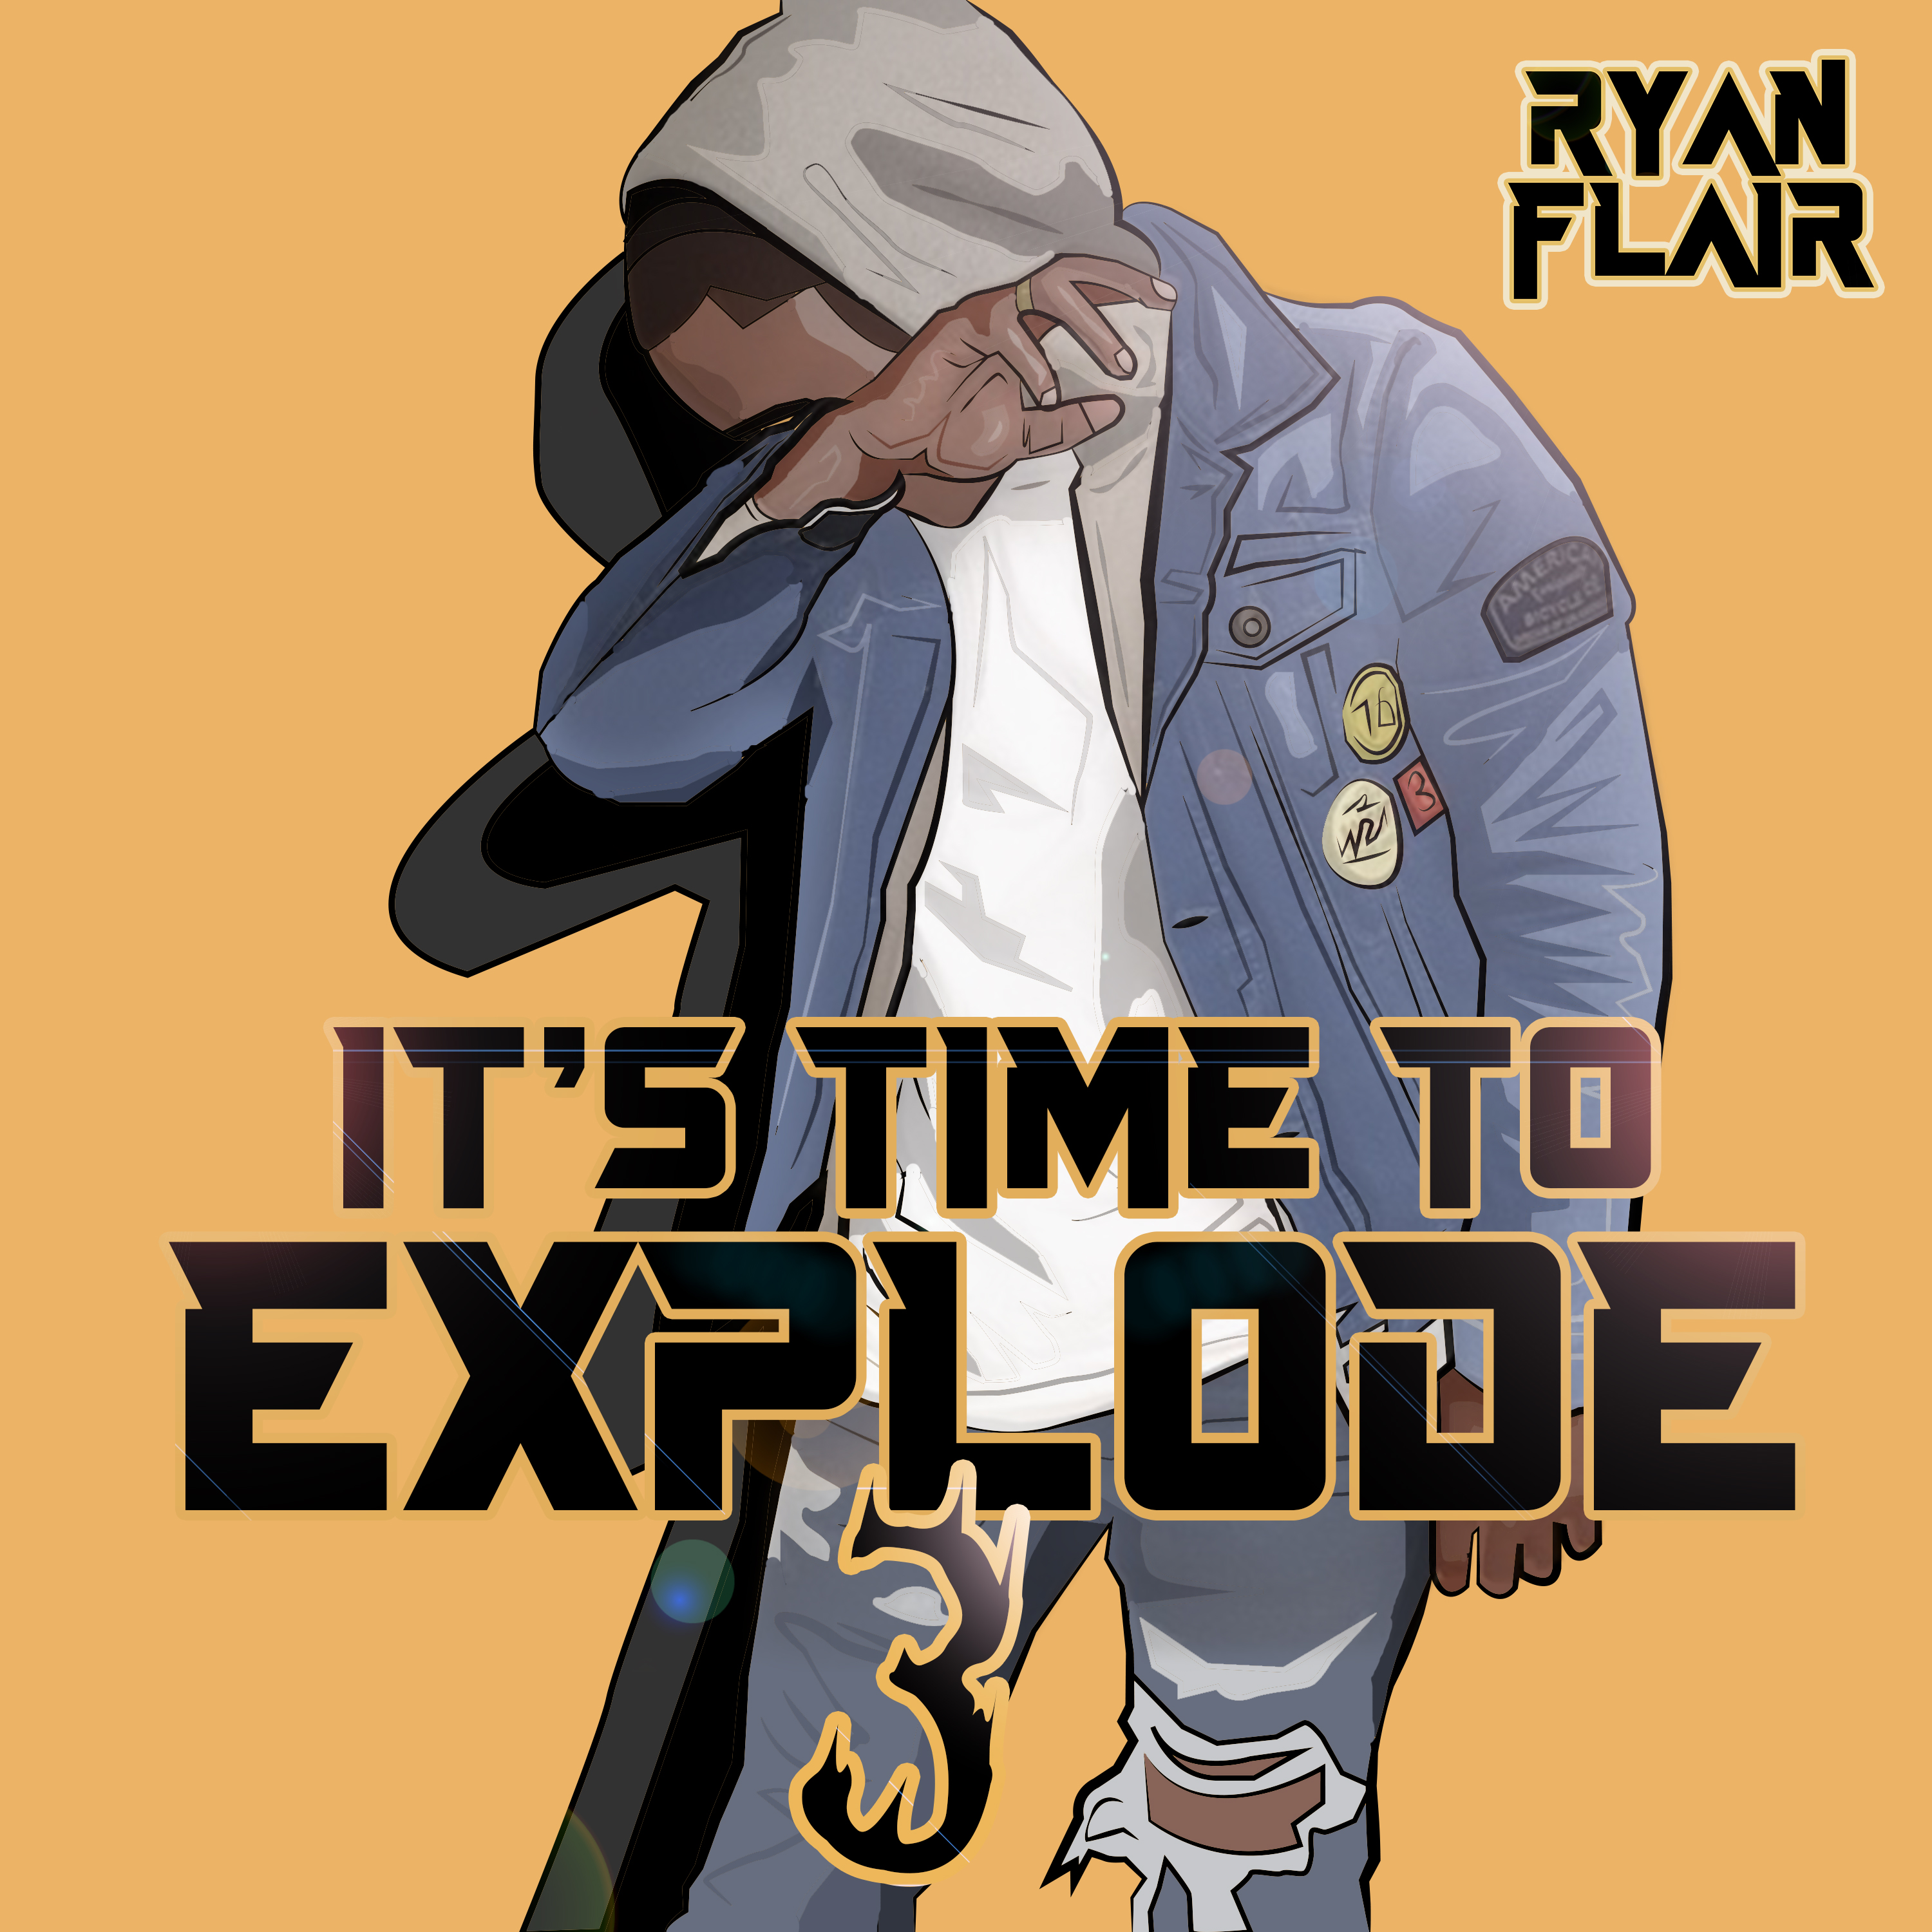 Ryan Flair - it's time to explode 3